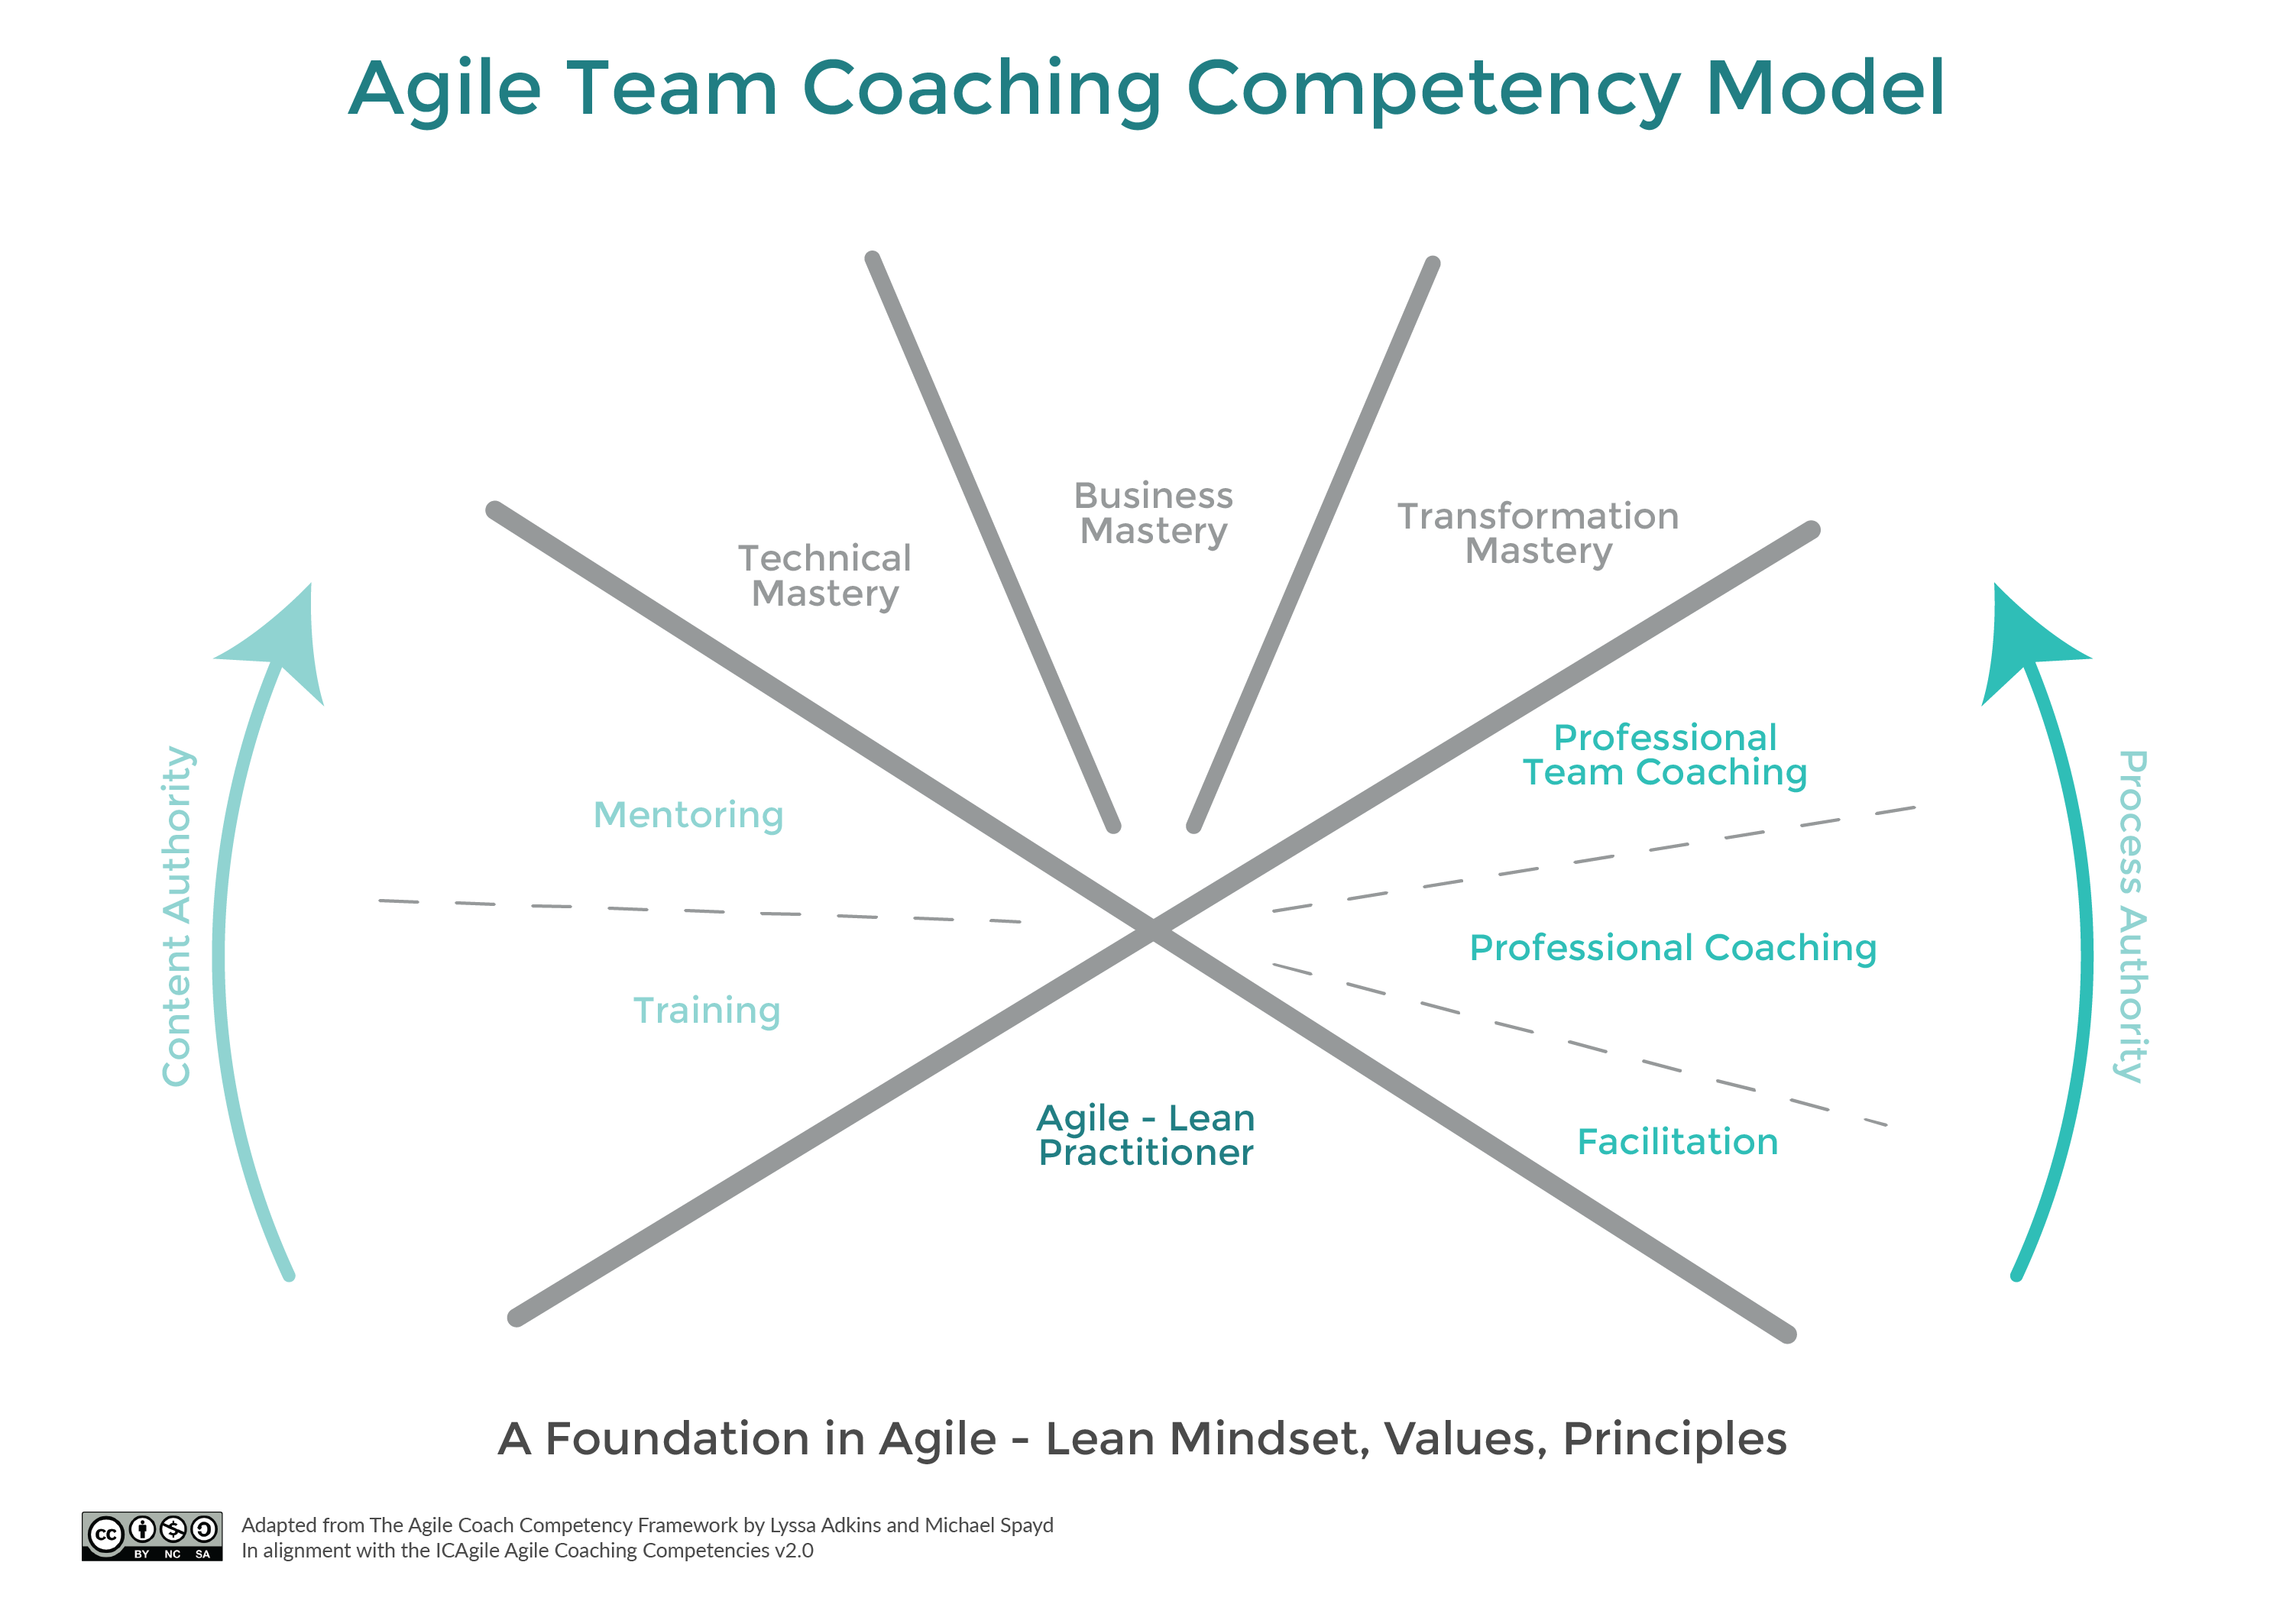 Agile Team Coaching Competency Model by Centre for Agile Coaching. Text on image is available in the content of this webpage.